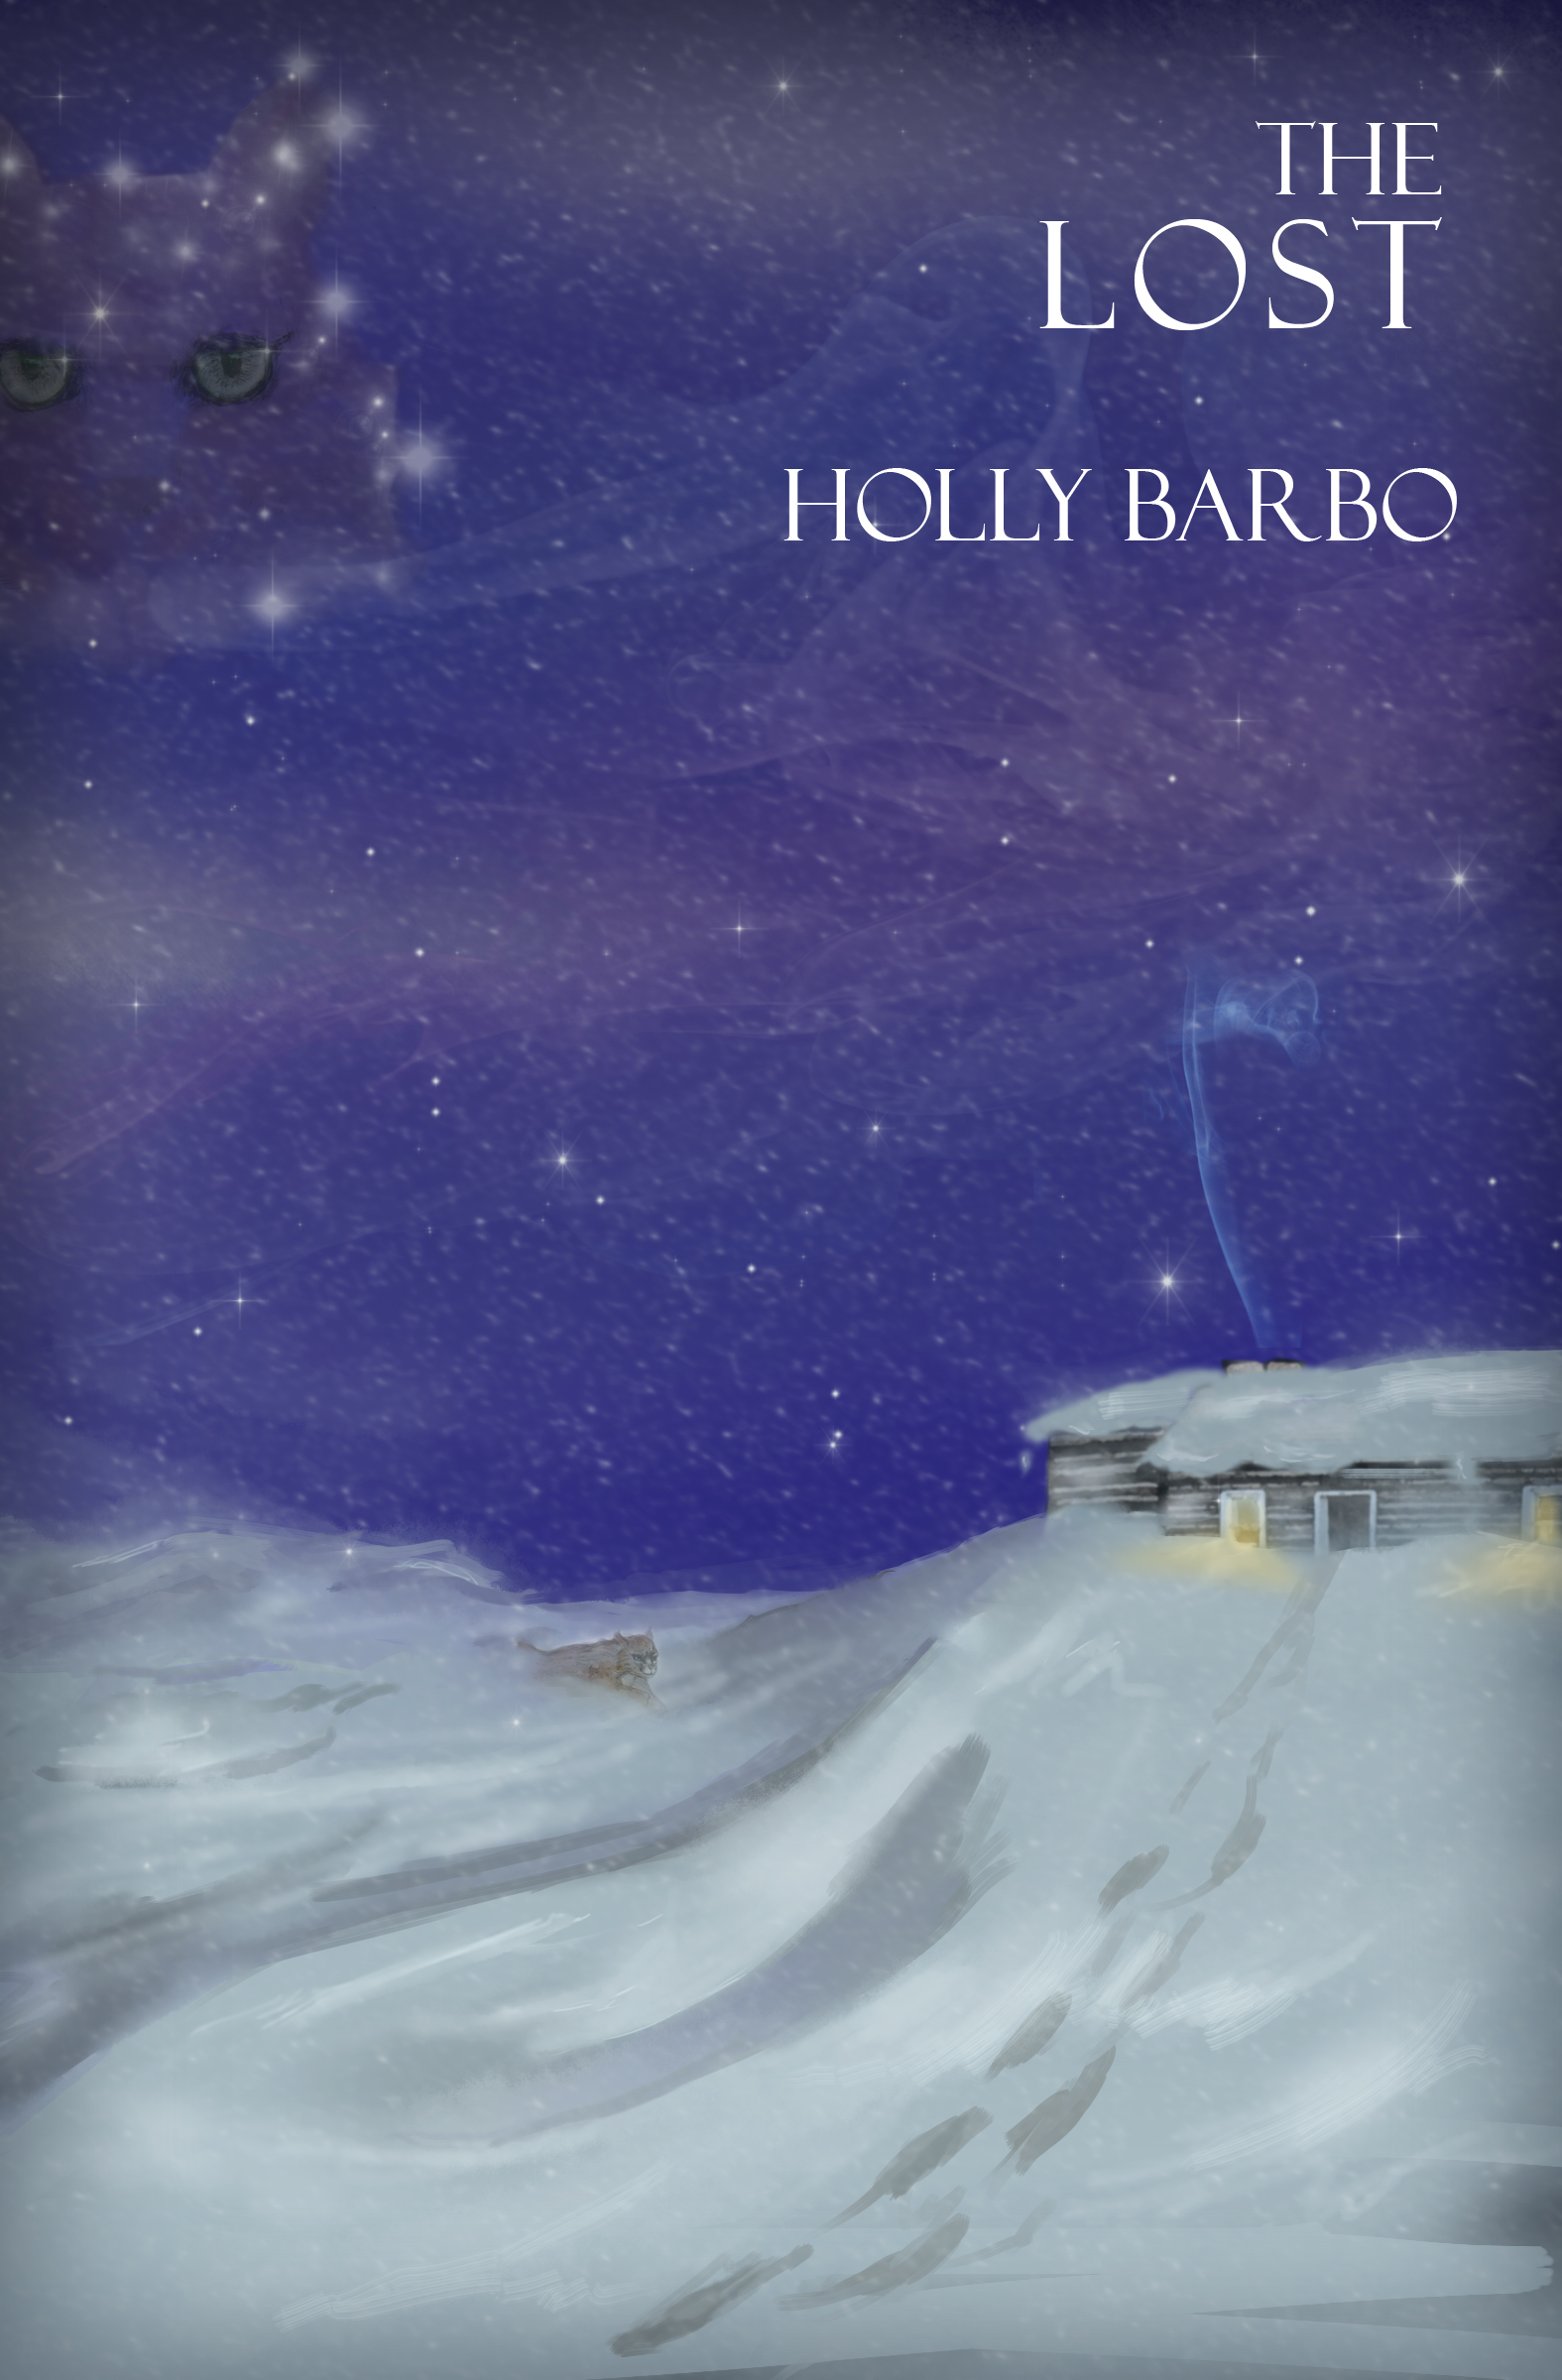 The Lost by Holly Barbo